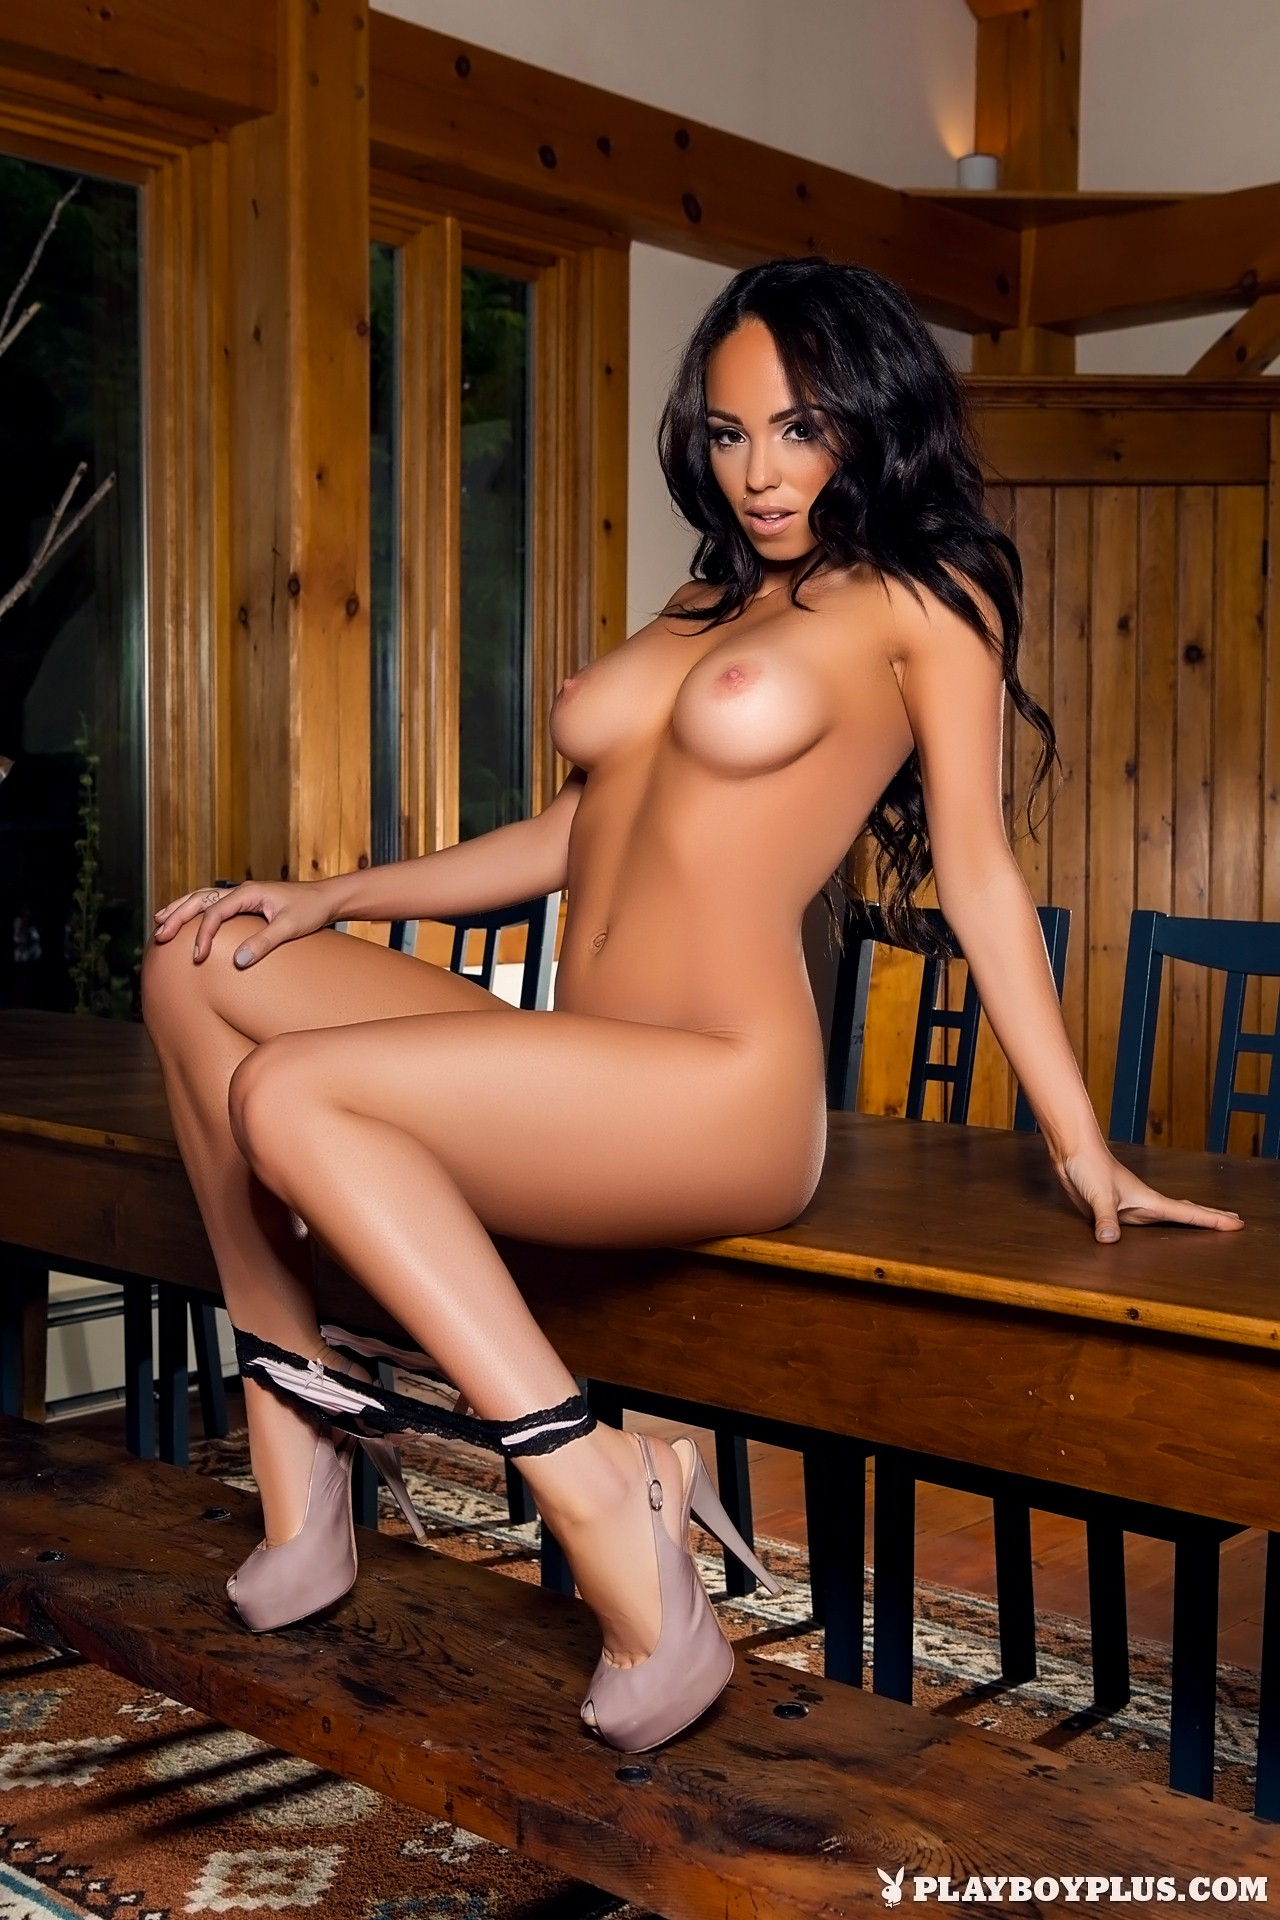 Shay Marie In Dining Hall Dime  A Tribute To Playboy-9121